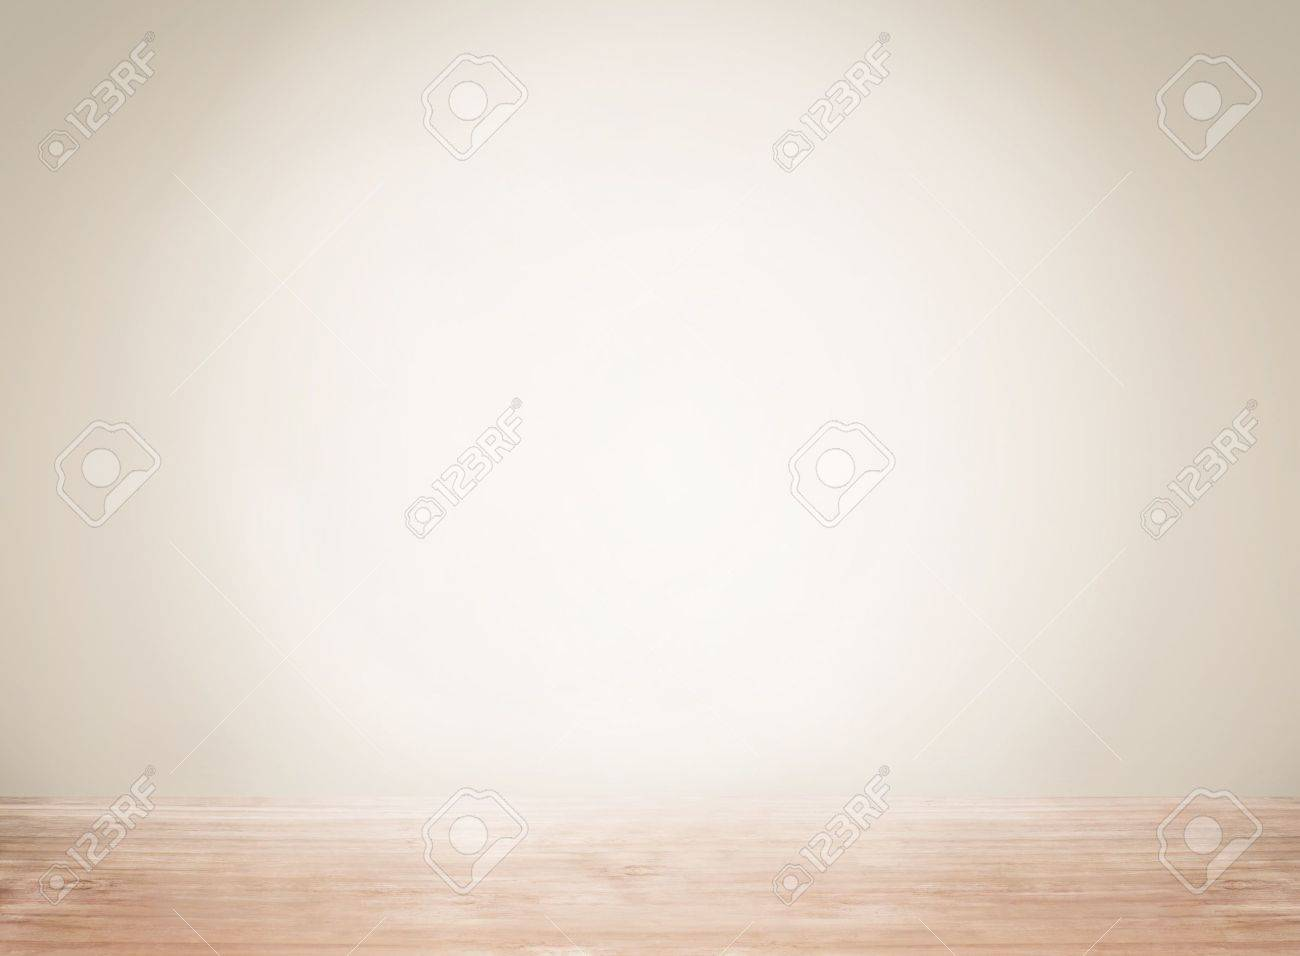 Empty space with wall and wooden floor Stock Photo - 16742077